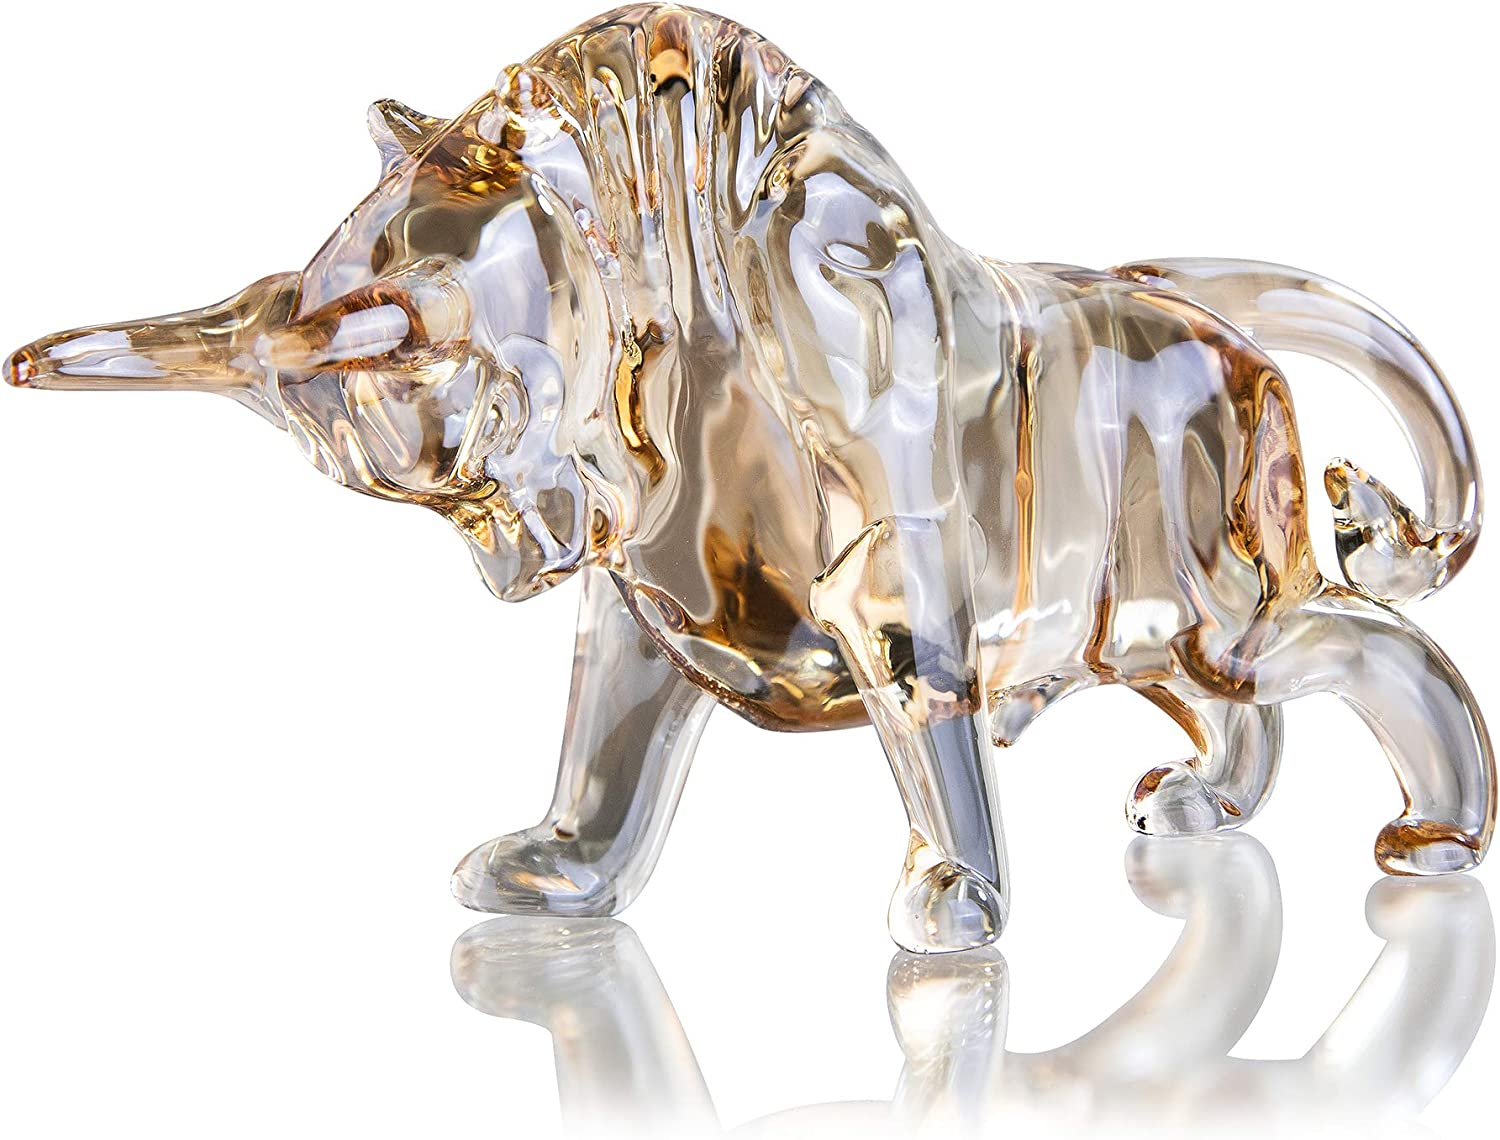 H&D HYALINE & DORA Charm and Lucky FengShui Crystal Statues Wall Street Bull Figurine Sculpture Home Office Desk Decorative Ornament